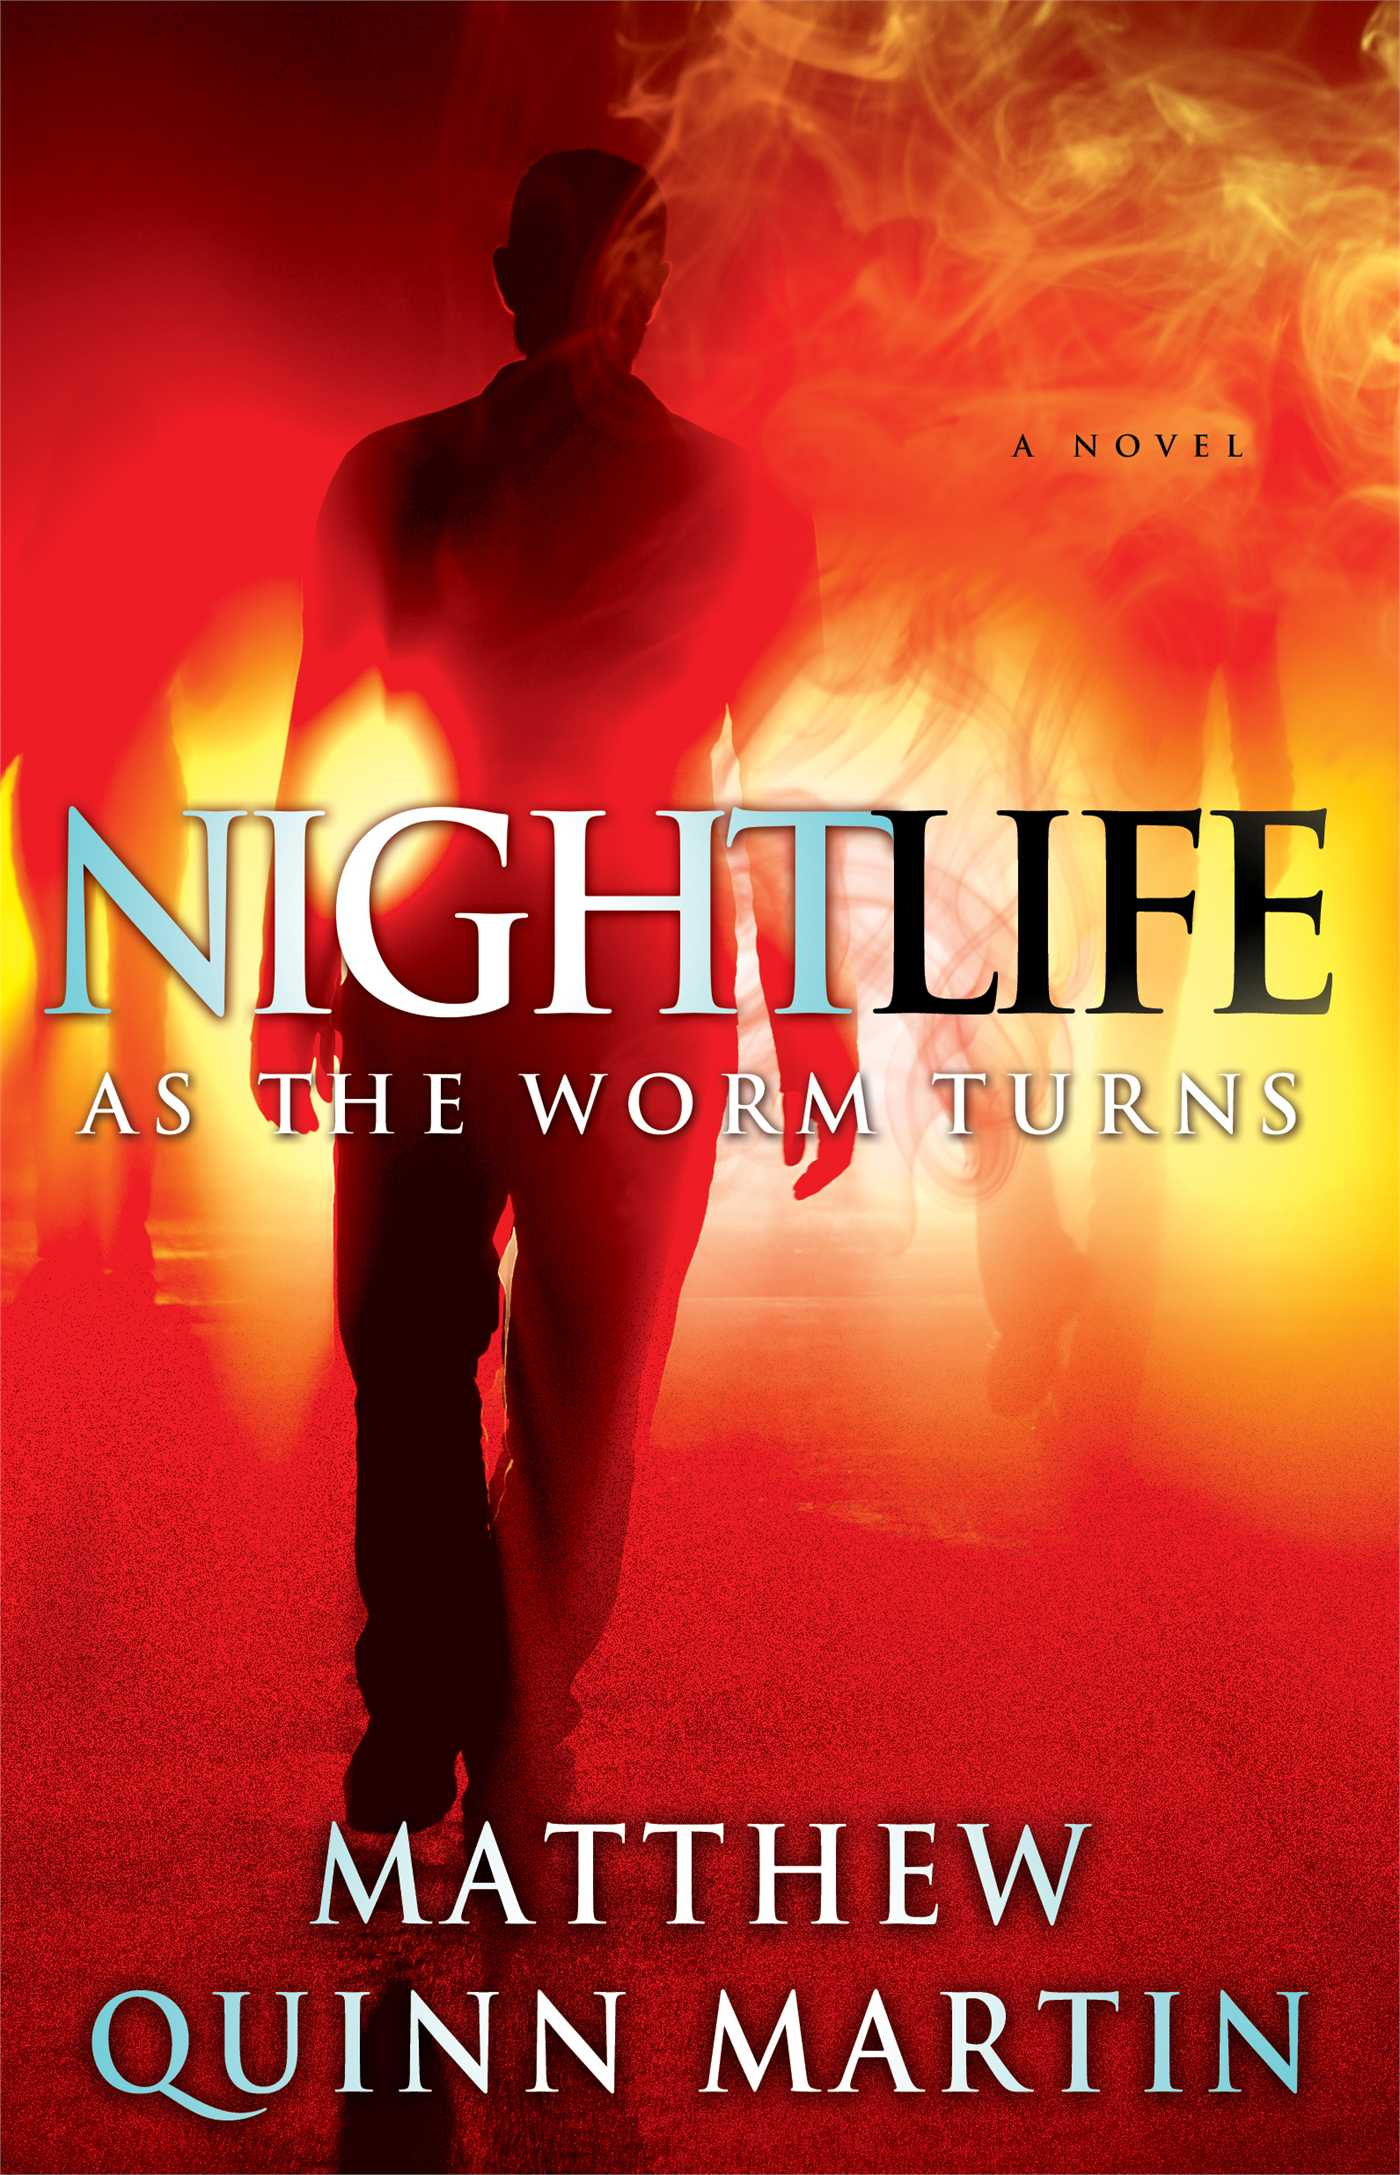 Nightlife-as-the-worm-turns-9781476746906_hr